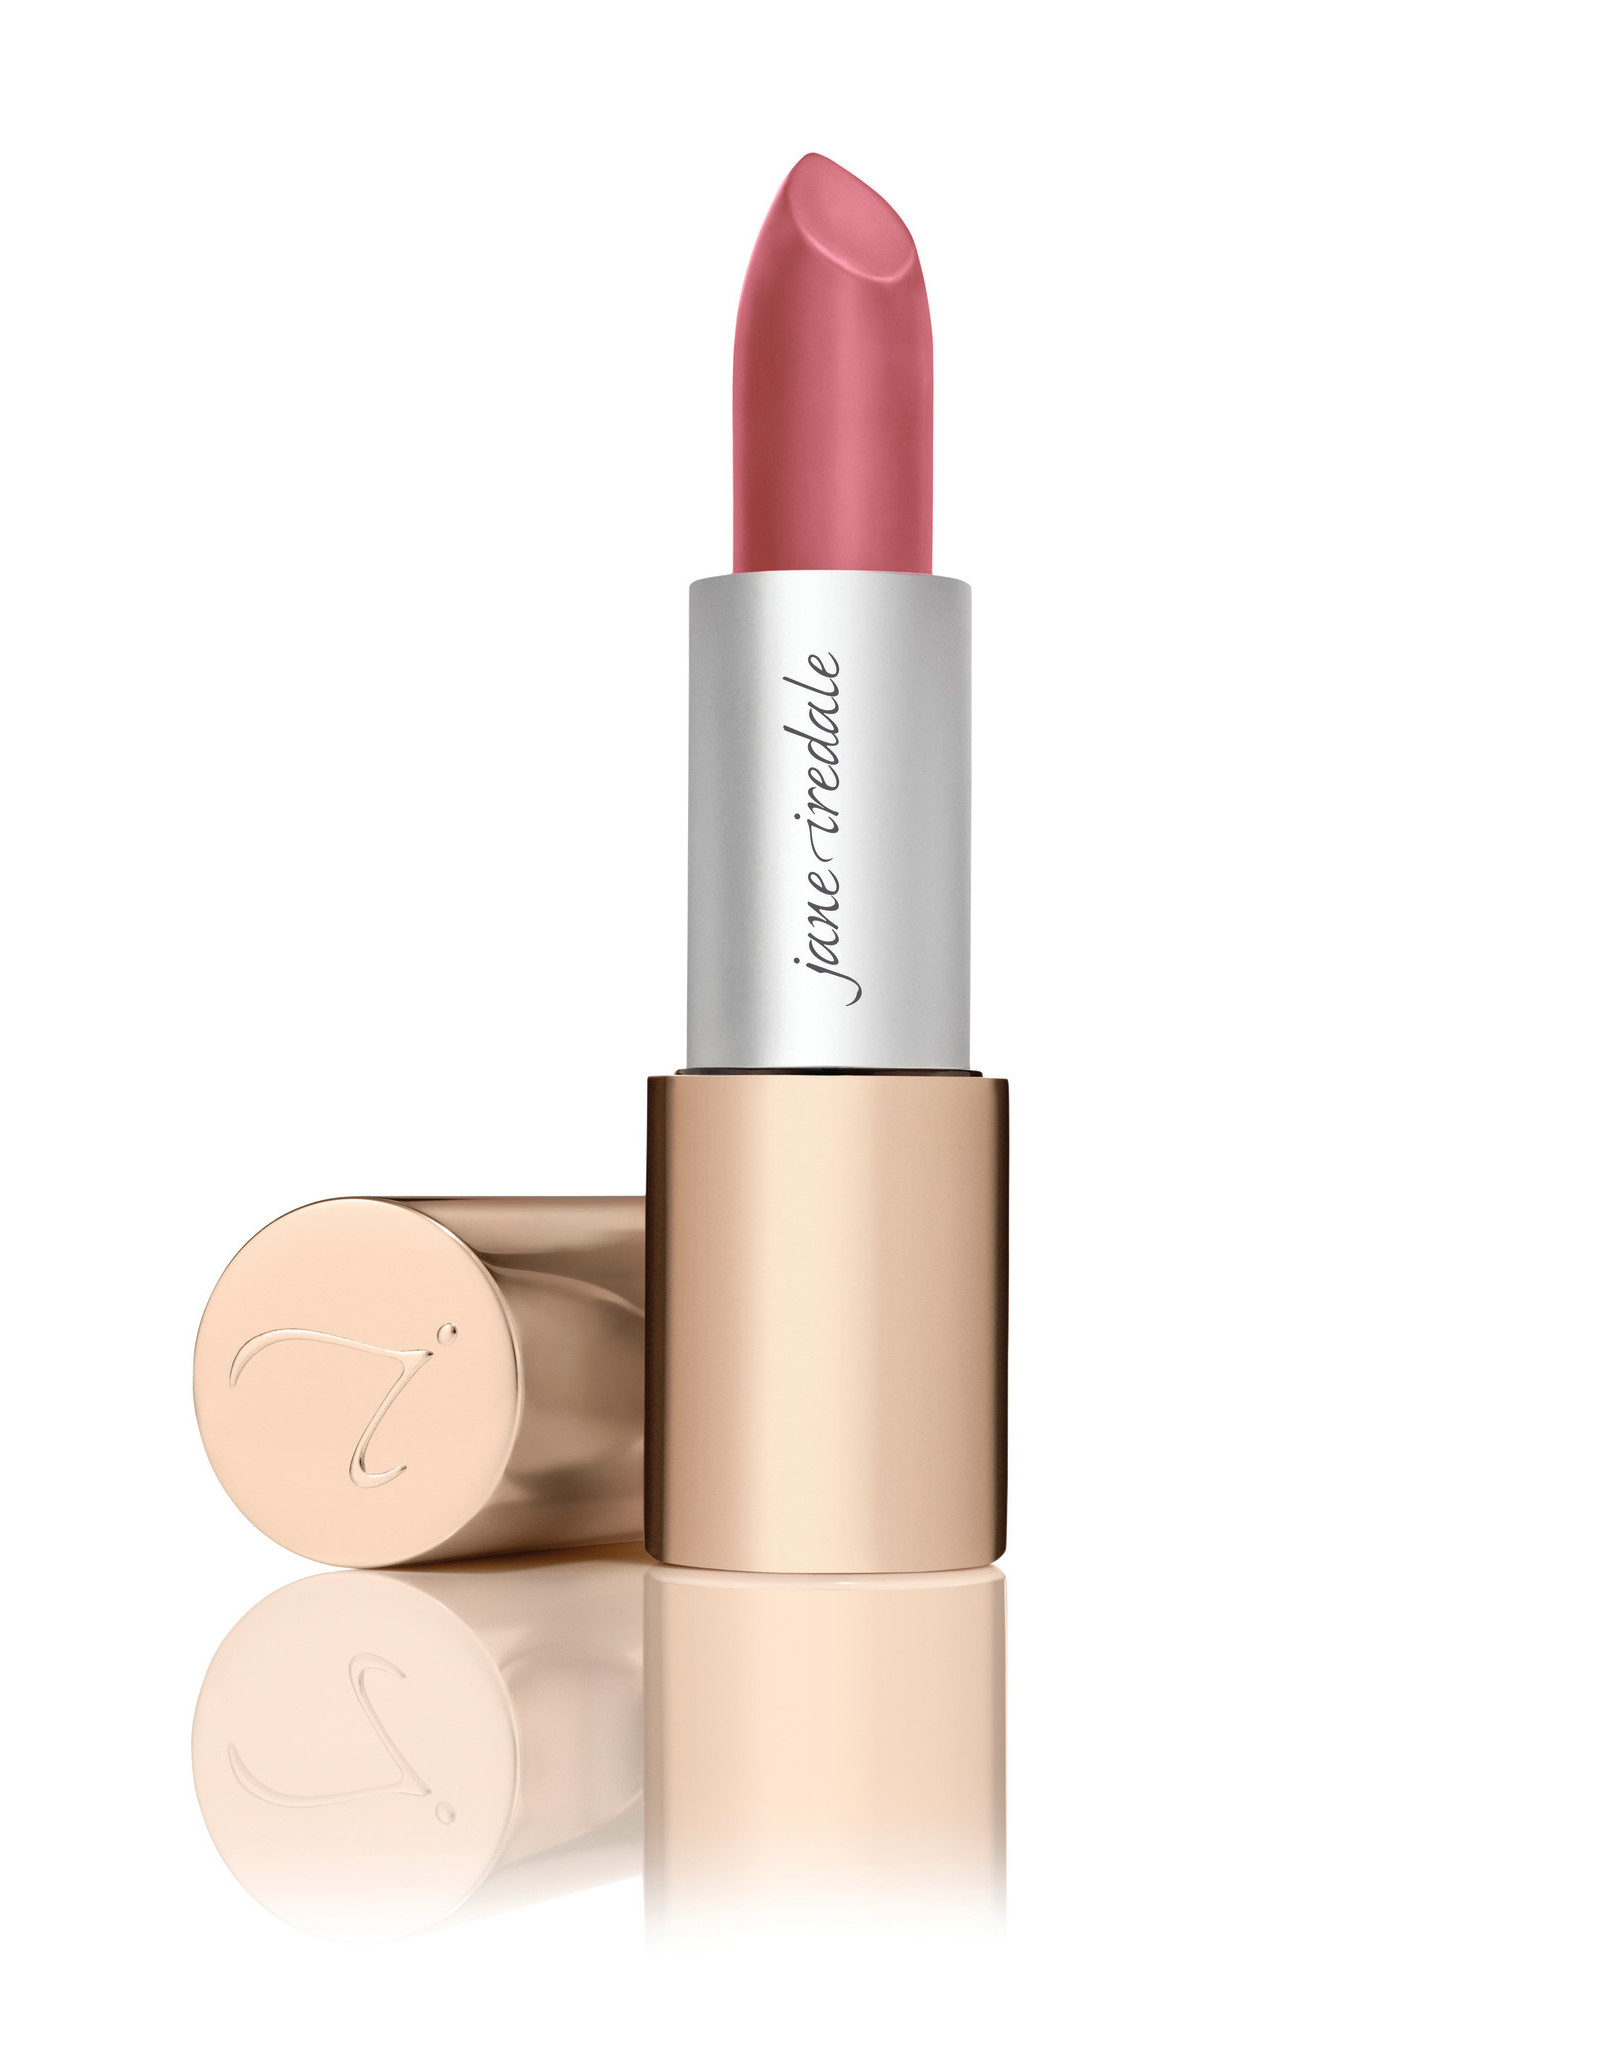 Jane Iredale Triple Luxe Long Lasting Naturally Moist Lipstick™